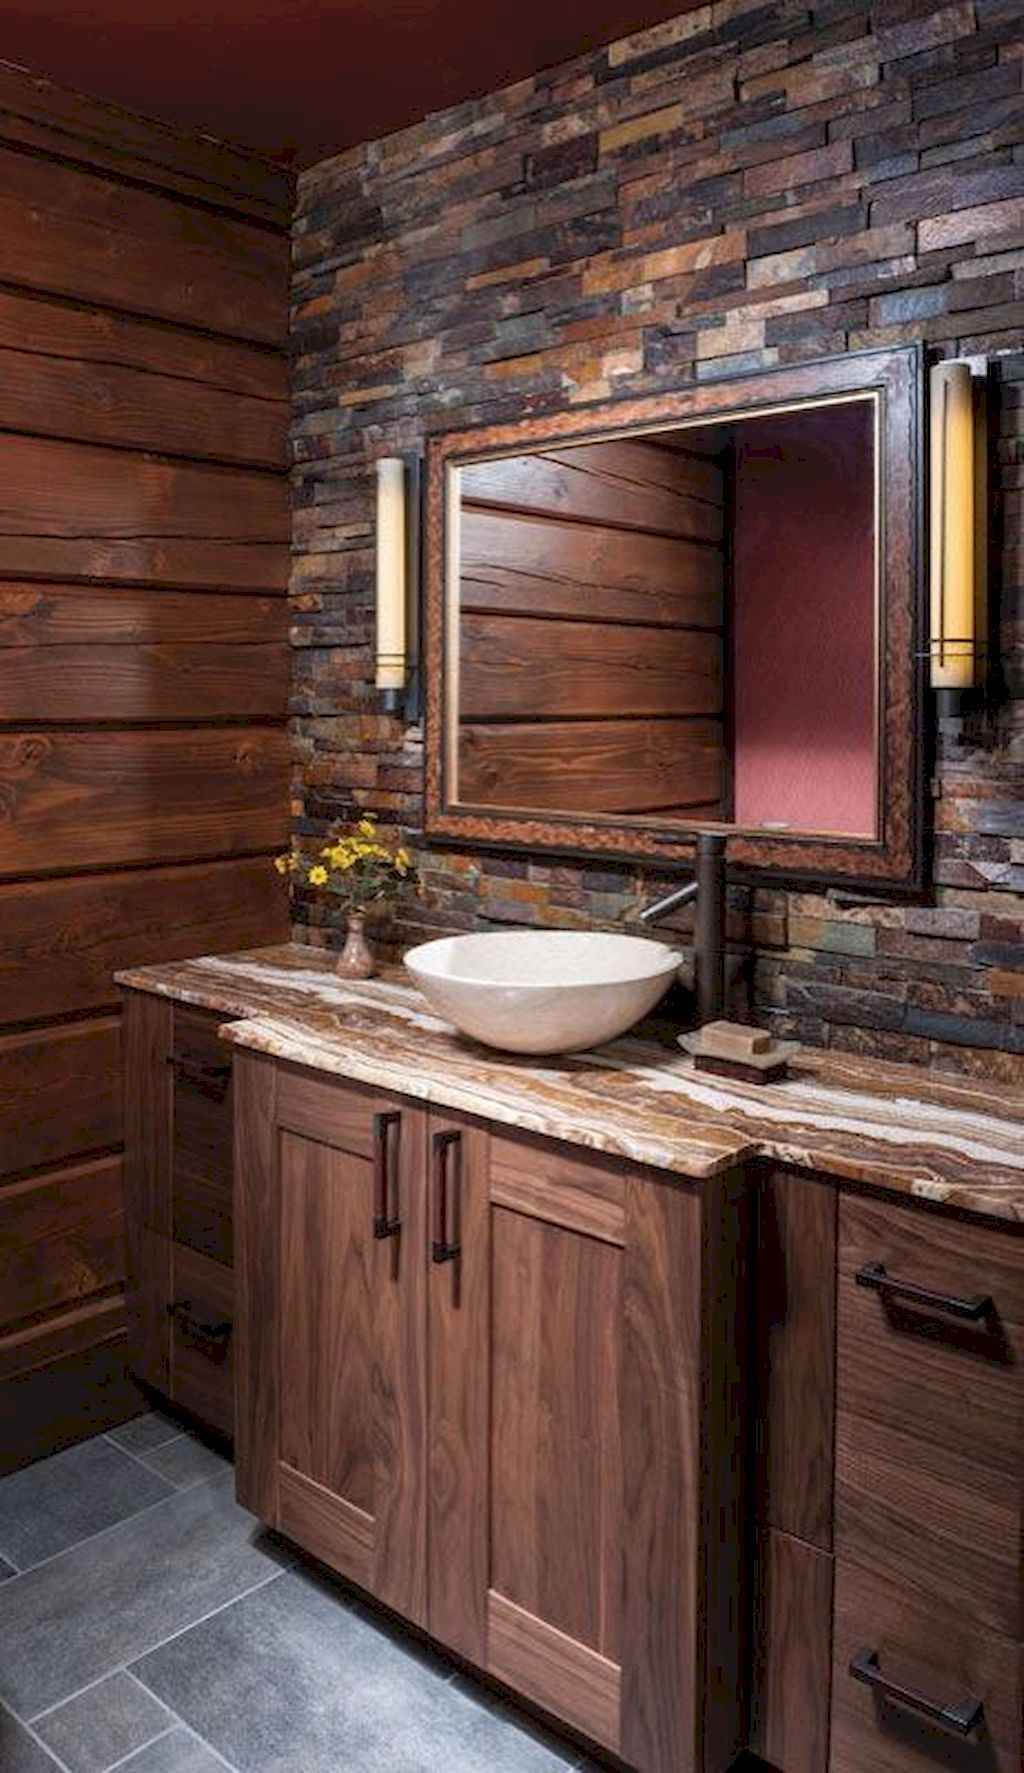 111 awesome small bathroom remodel ideas on a budget (52)